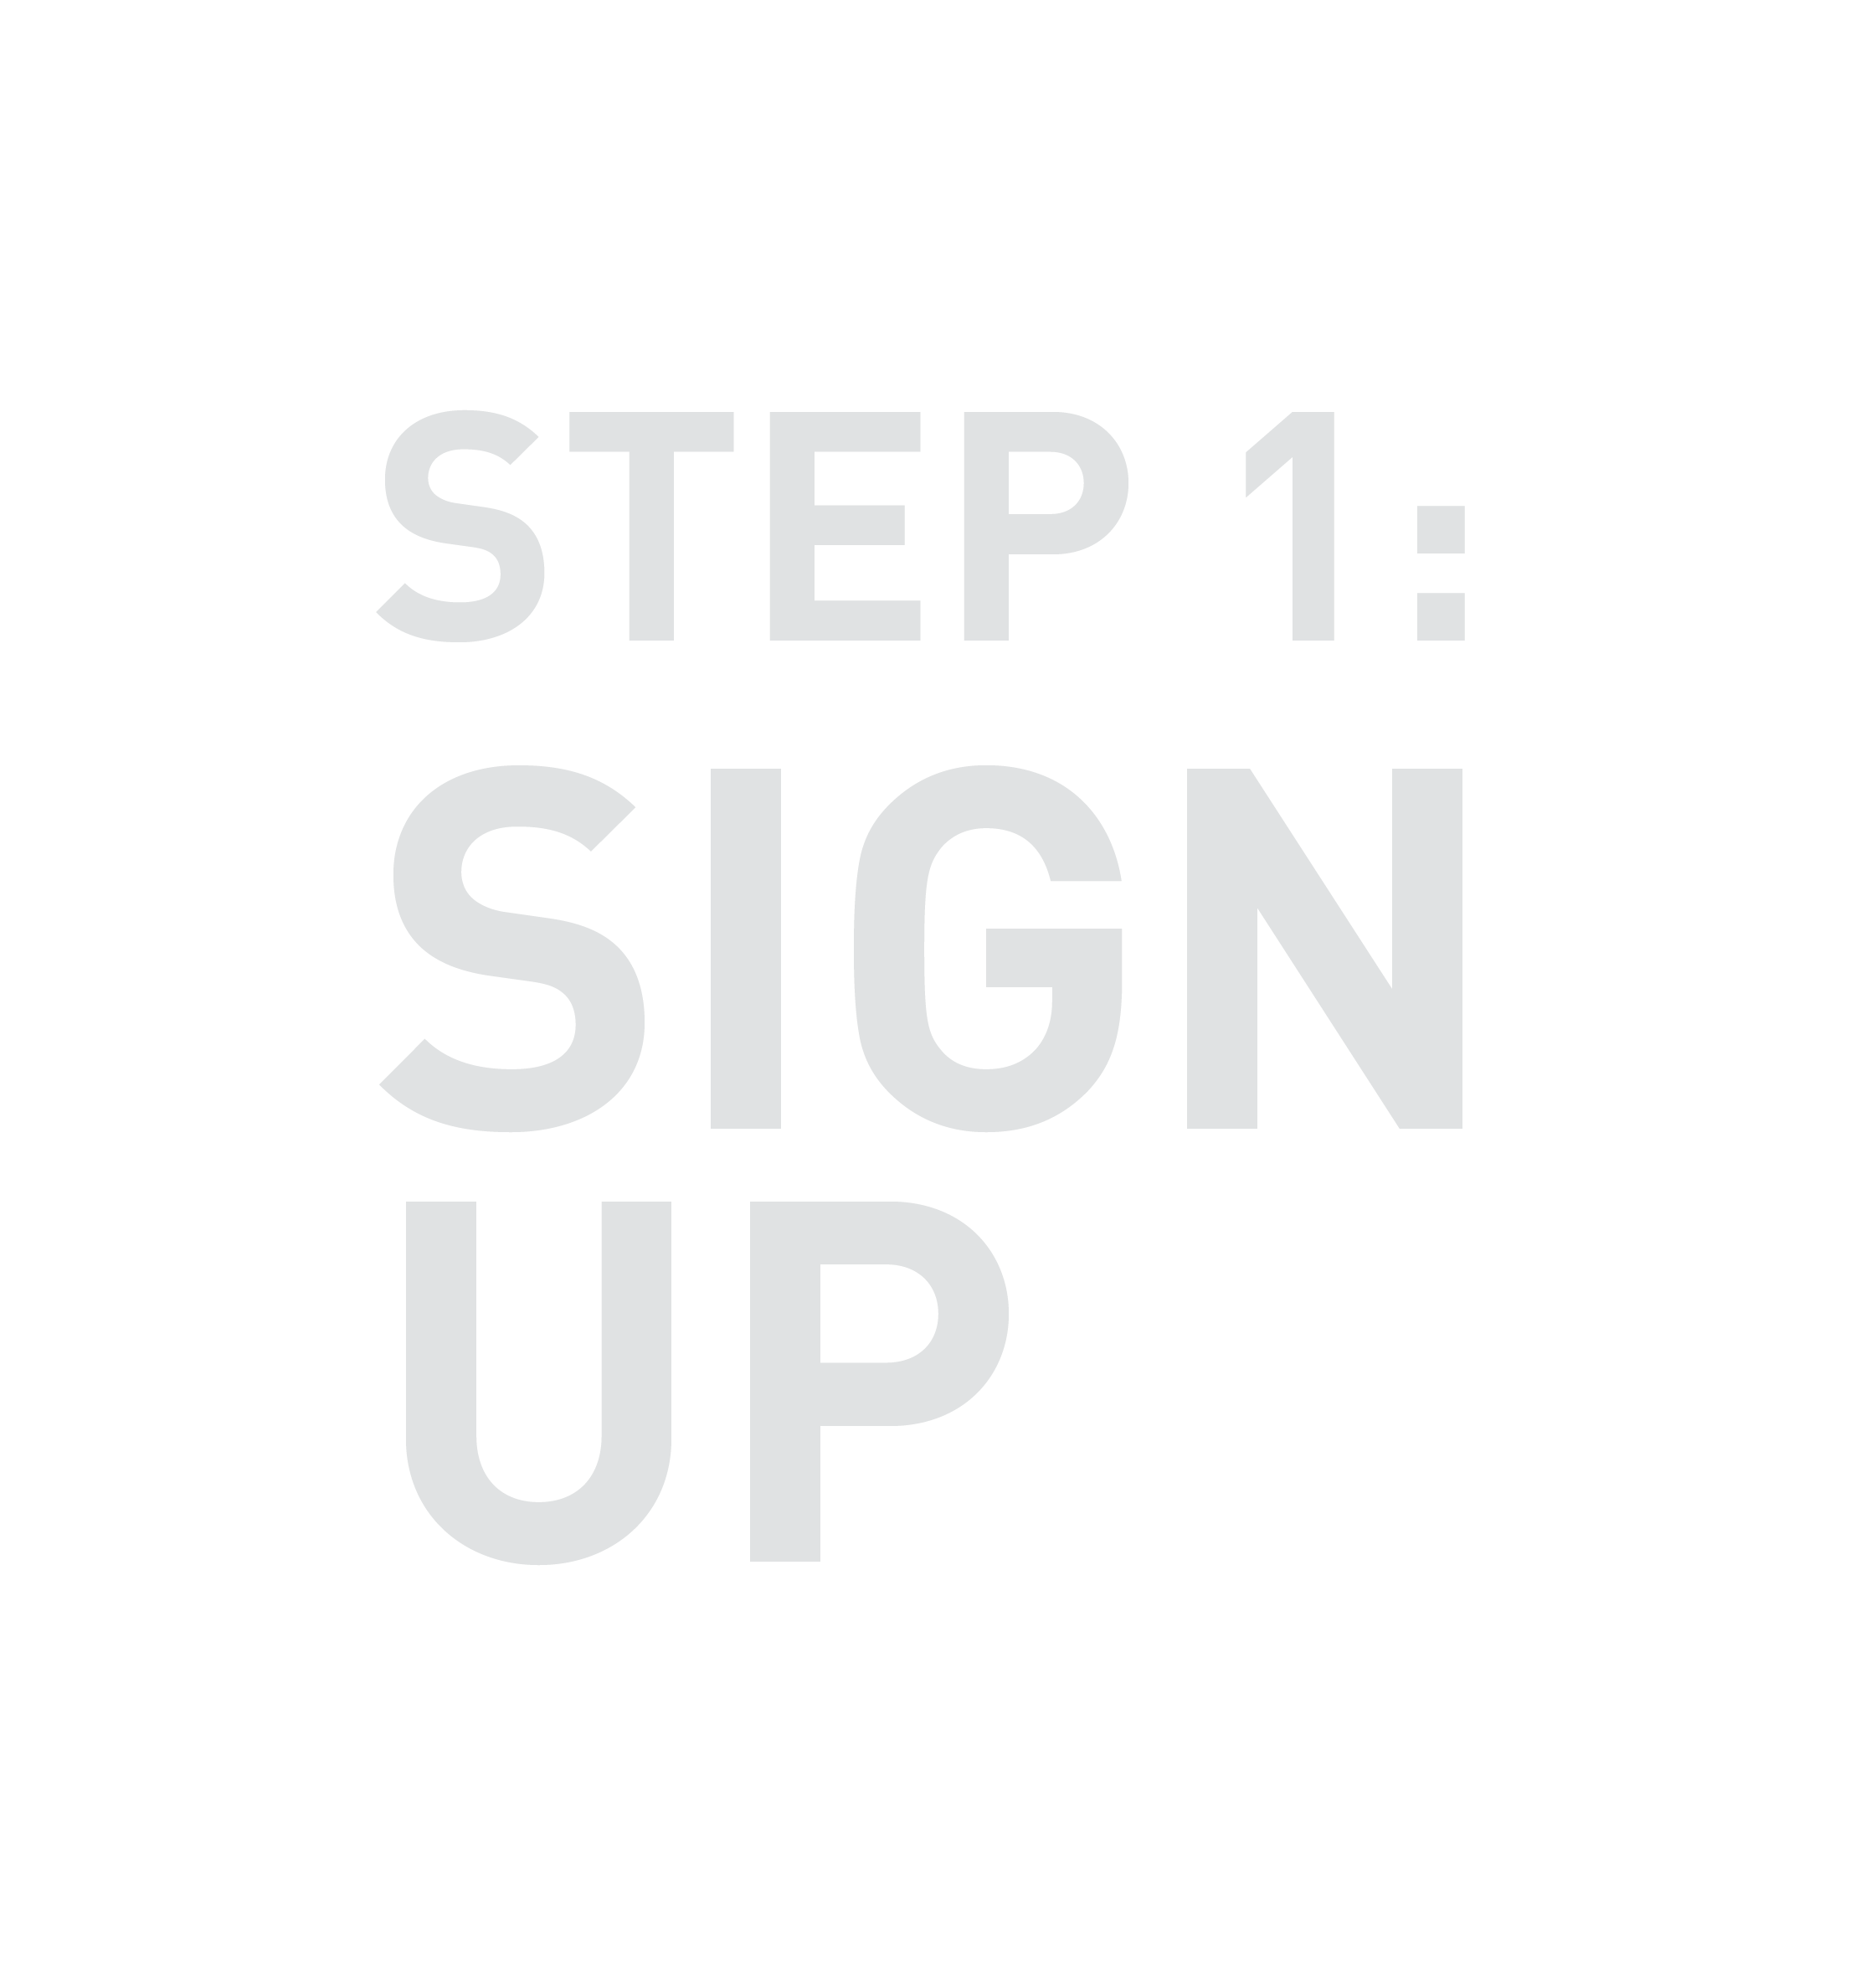 SIGN UP AS A PROSPECTIVE MEMBER -